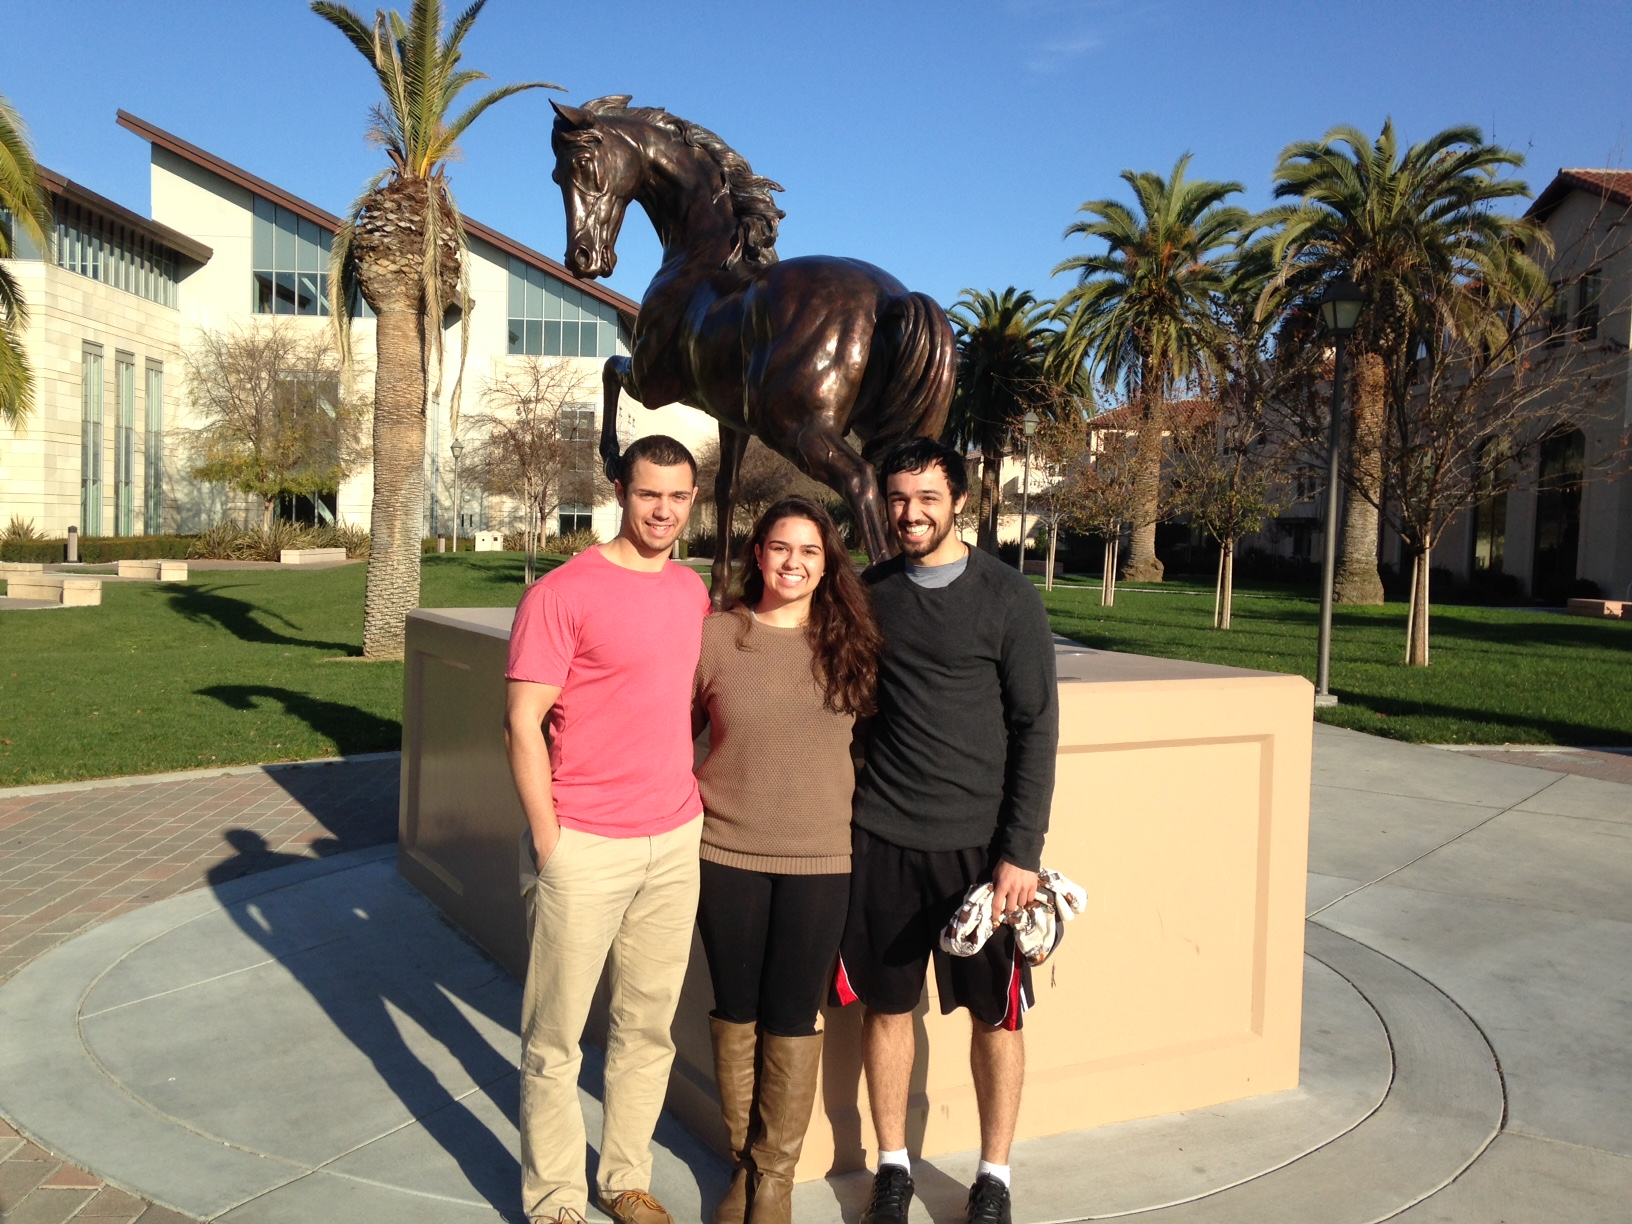 Zach, Rhonda and Jake Teeny at SCU